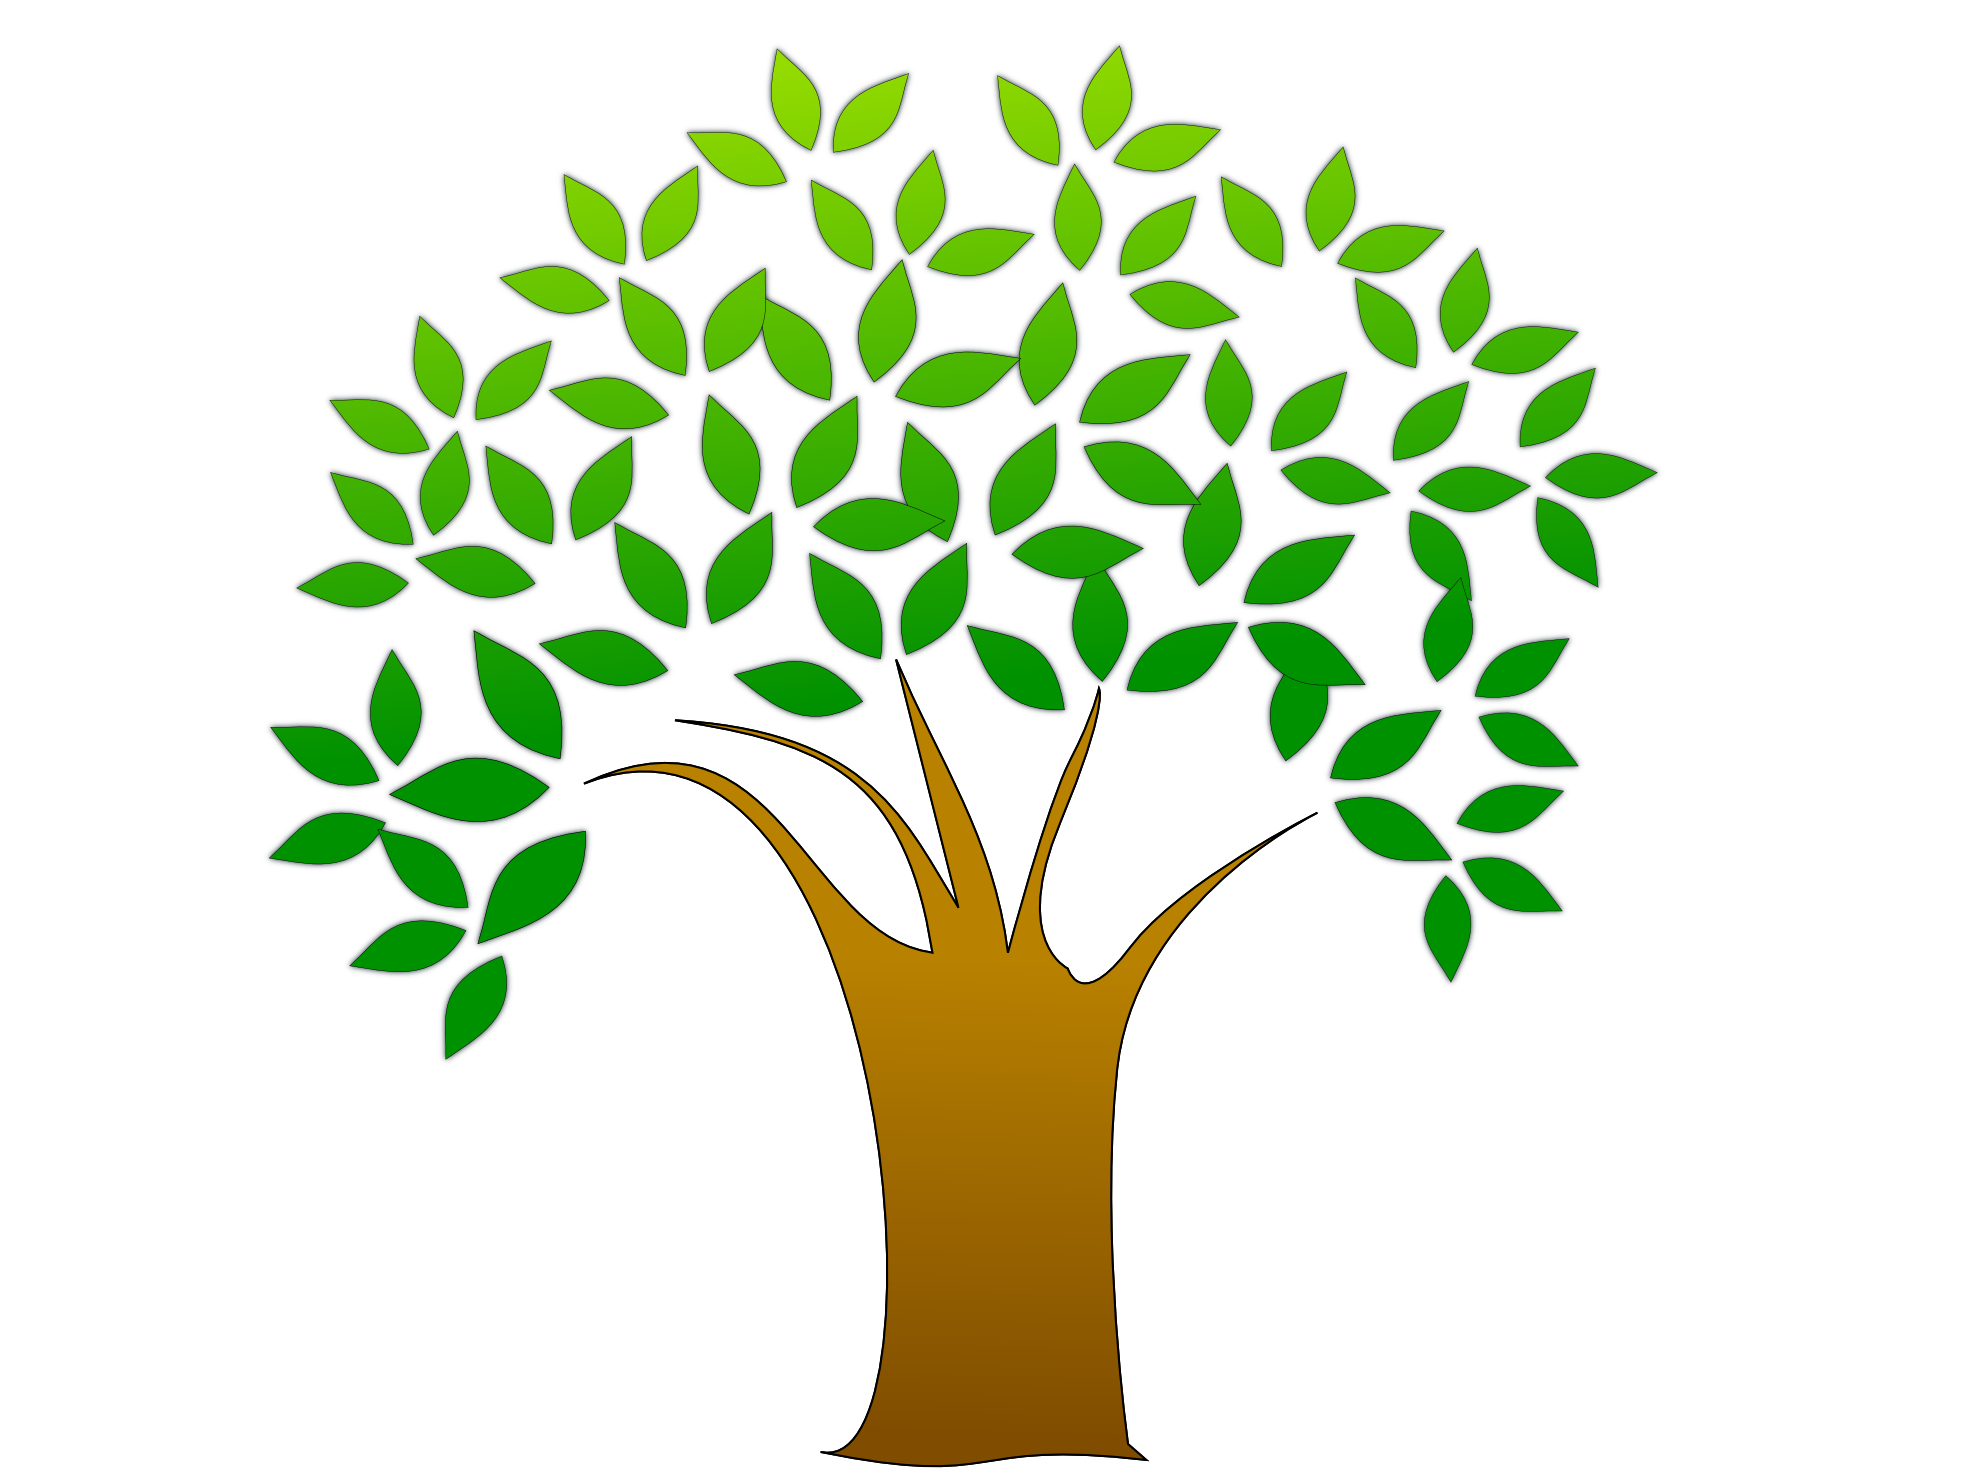 Free Tree Cliparts, Download Free Clip Art, Free Clip Art on.